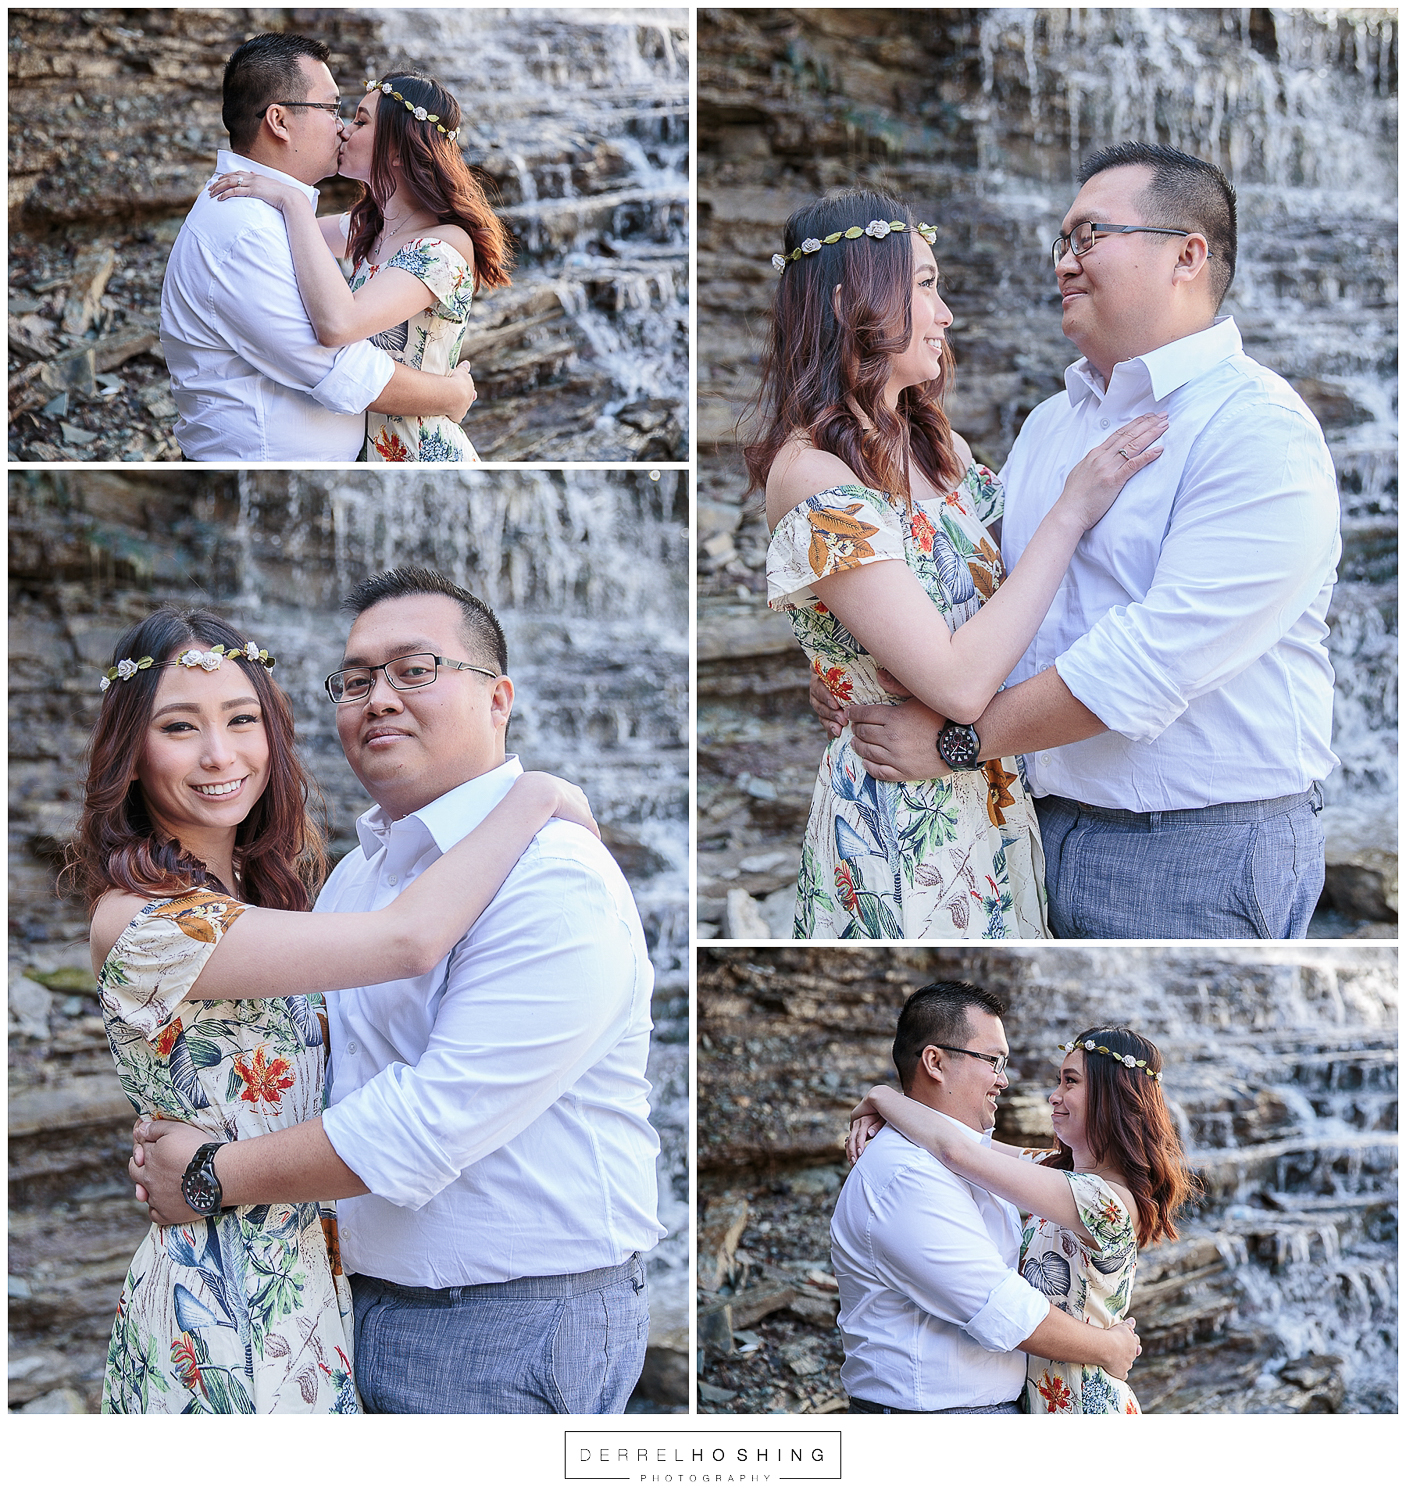 Albion-Falls-Engagment-Shoot-Hamilton-Toronto-Wedding-Photographer-Derrel-Hoshing-0005.jpg